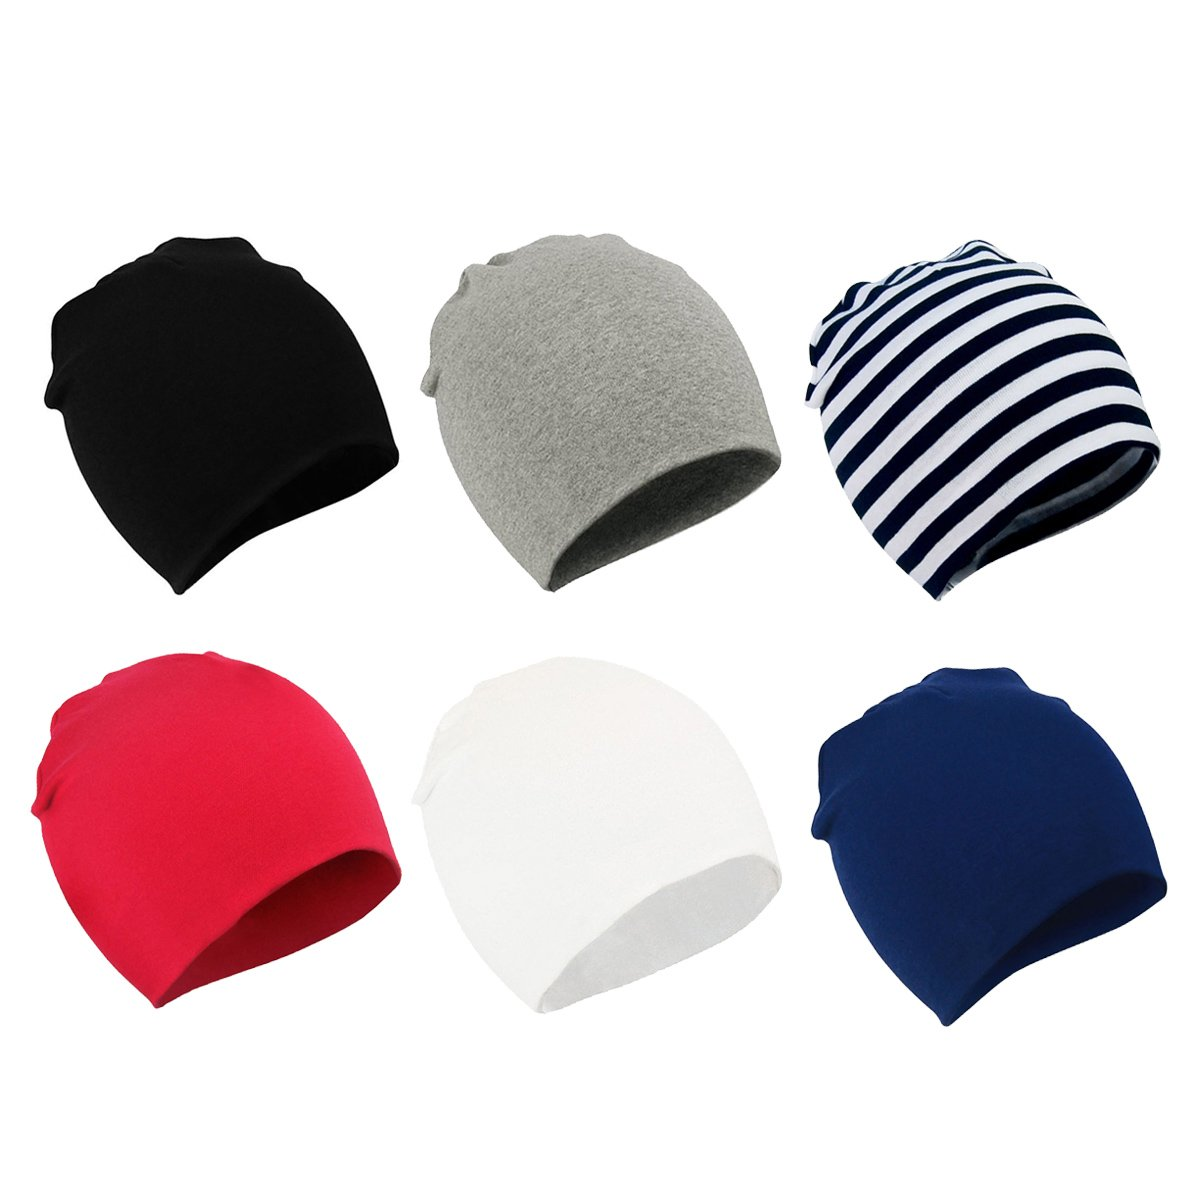 Zando Toddler Baby Beanies Hat for Baby Girls Cotton Knit Beanie Kids Lovely Soft Cute Cap Infant Beanies for Baby Boys A 6 Pack Black Stripe White Navy Light Grey Red Small (0-12 months)